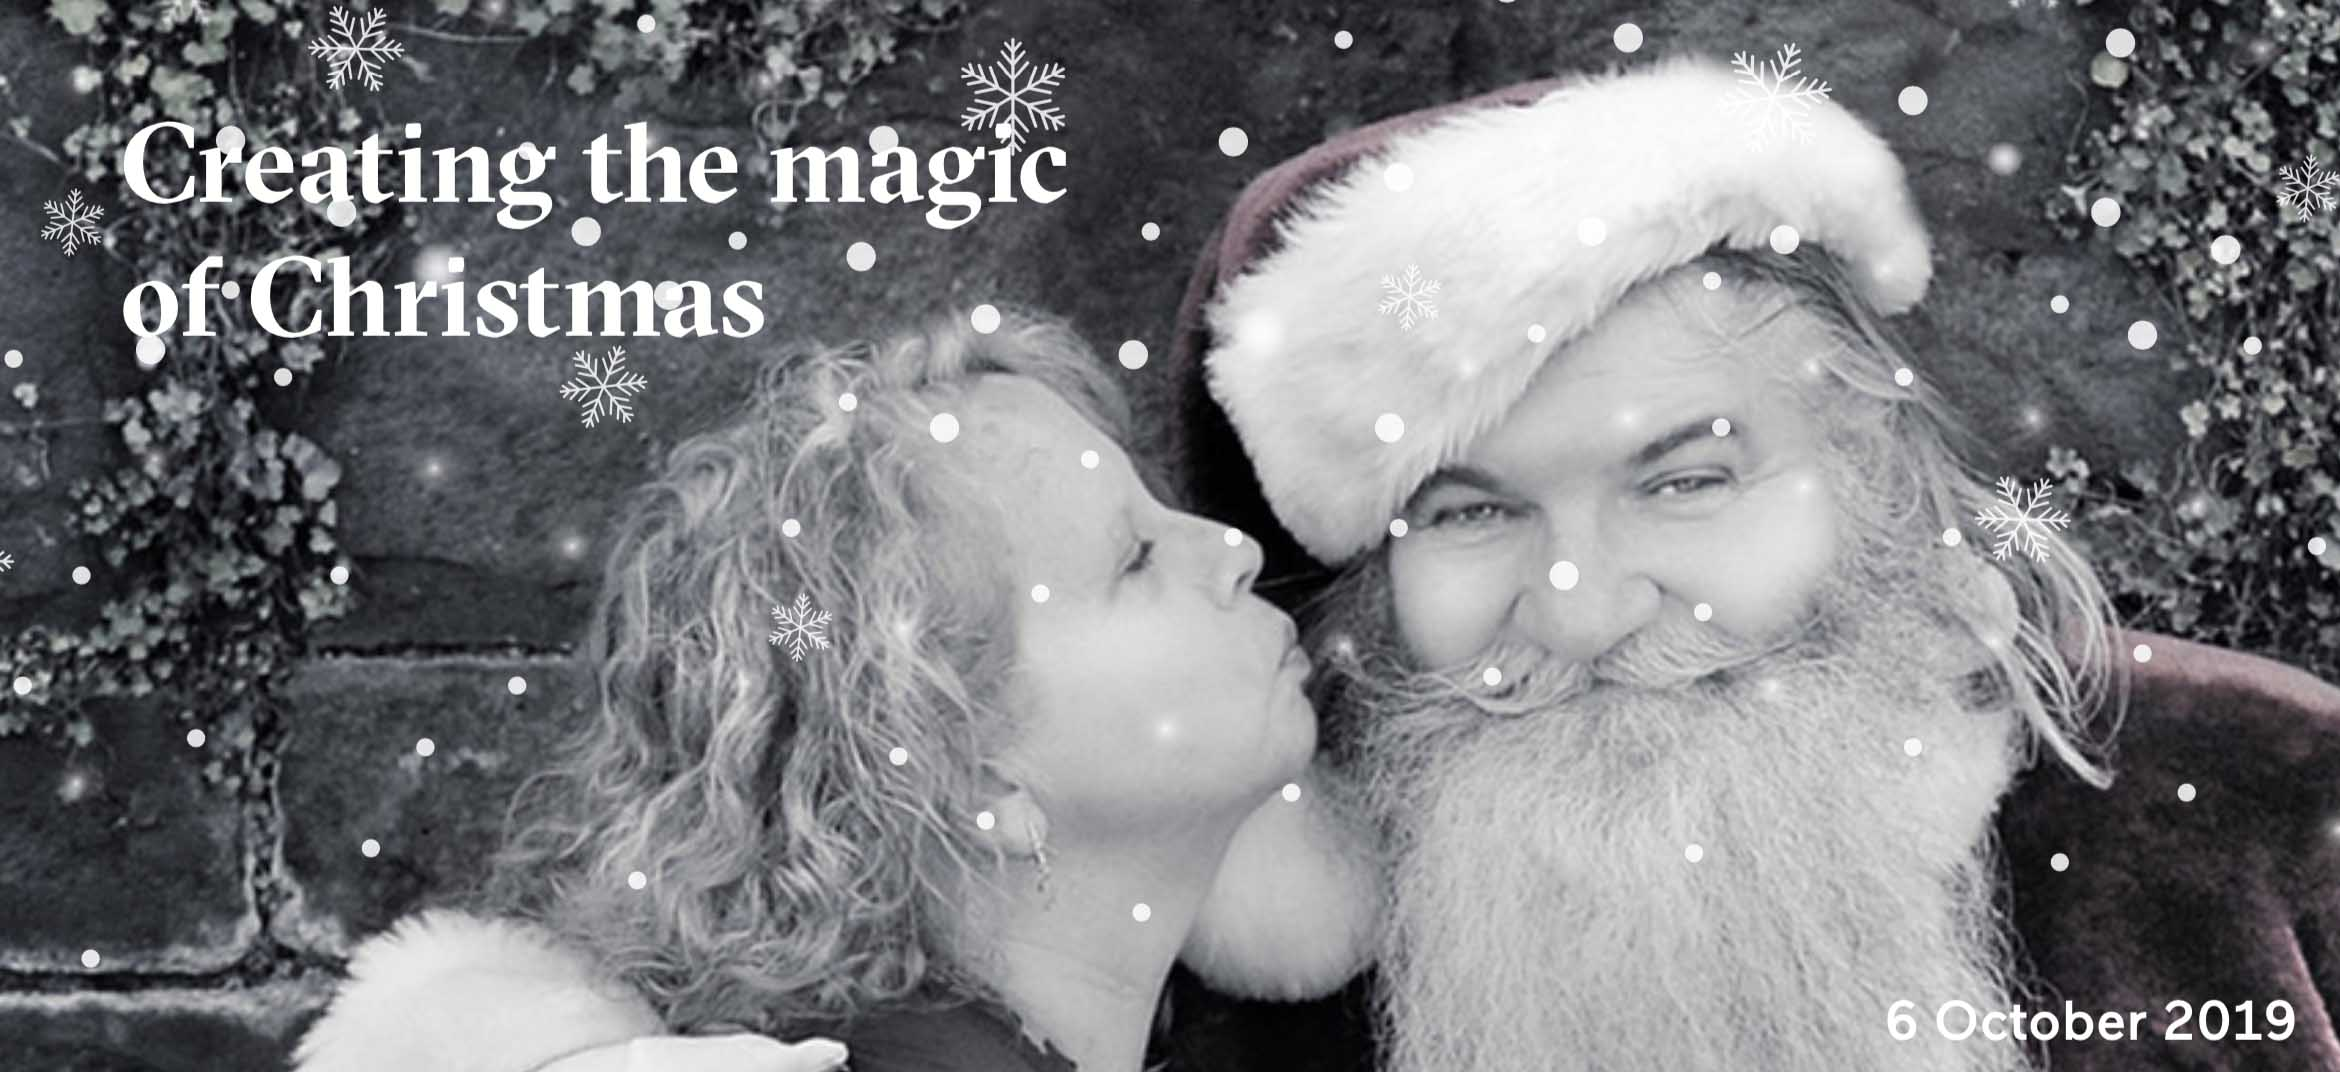 CREATING THE MAGIC OF CHRISTMAS